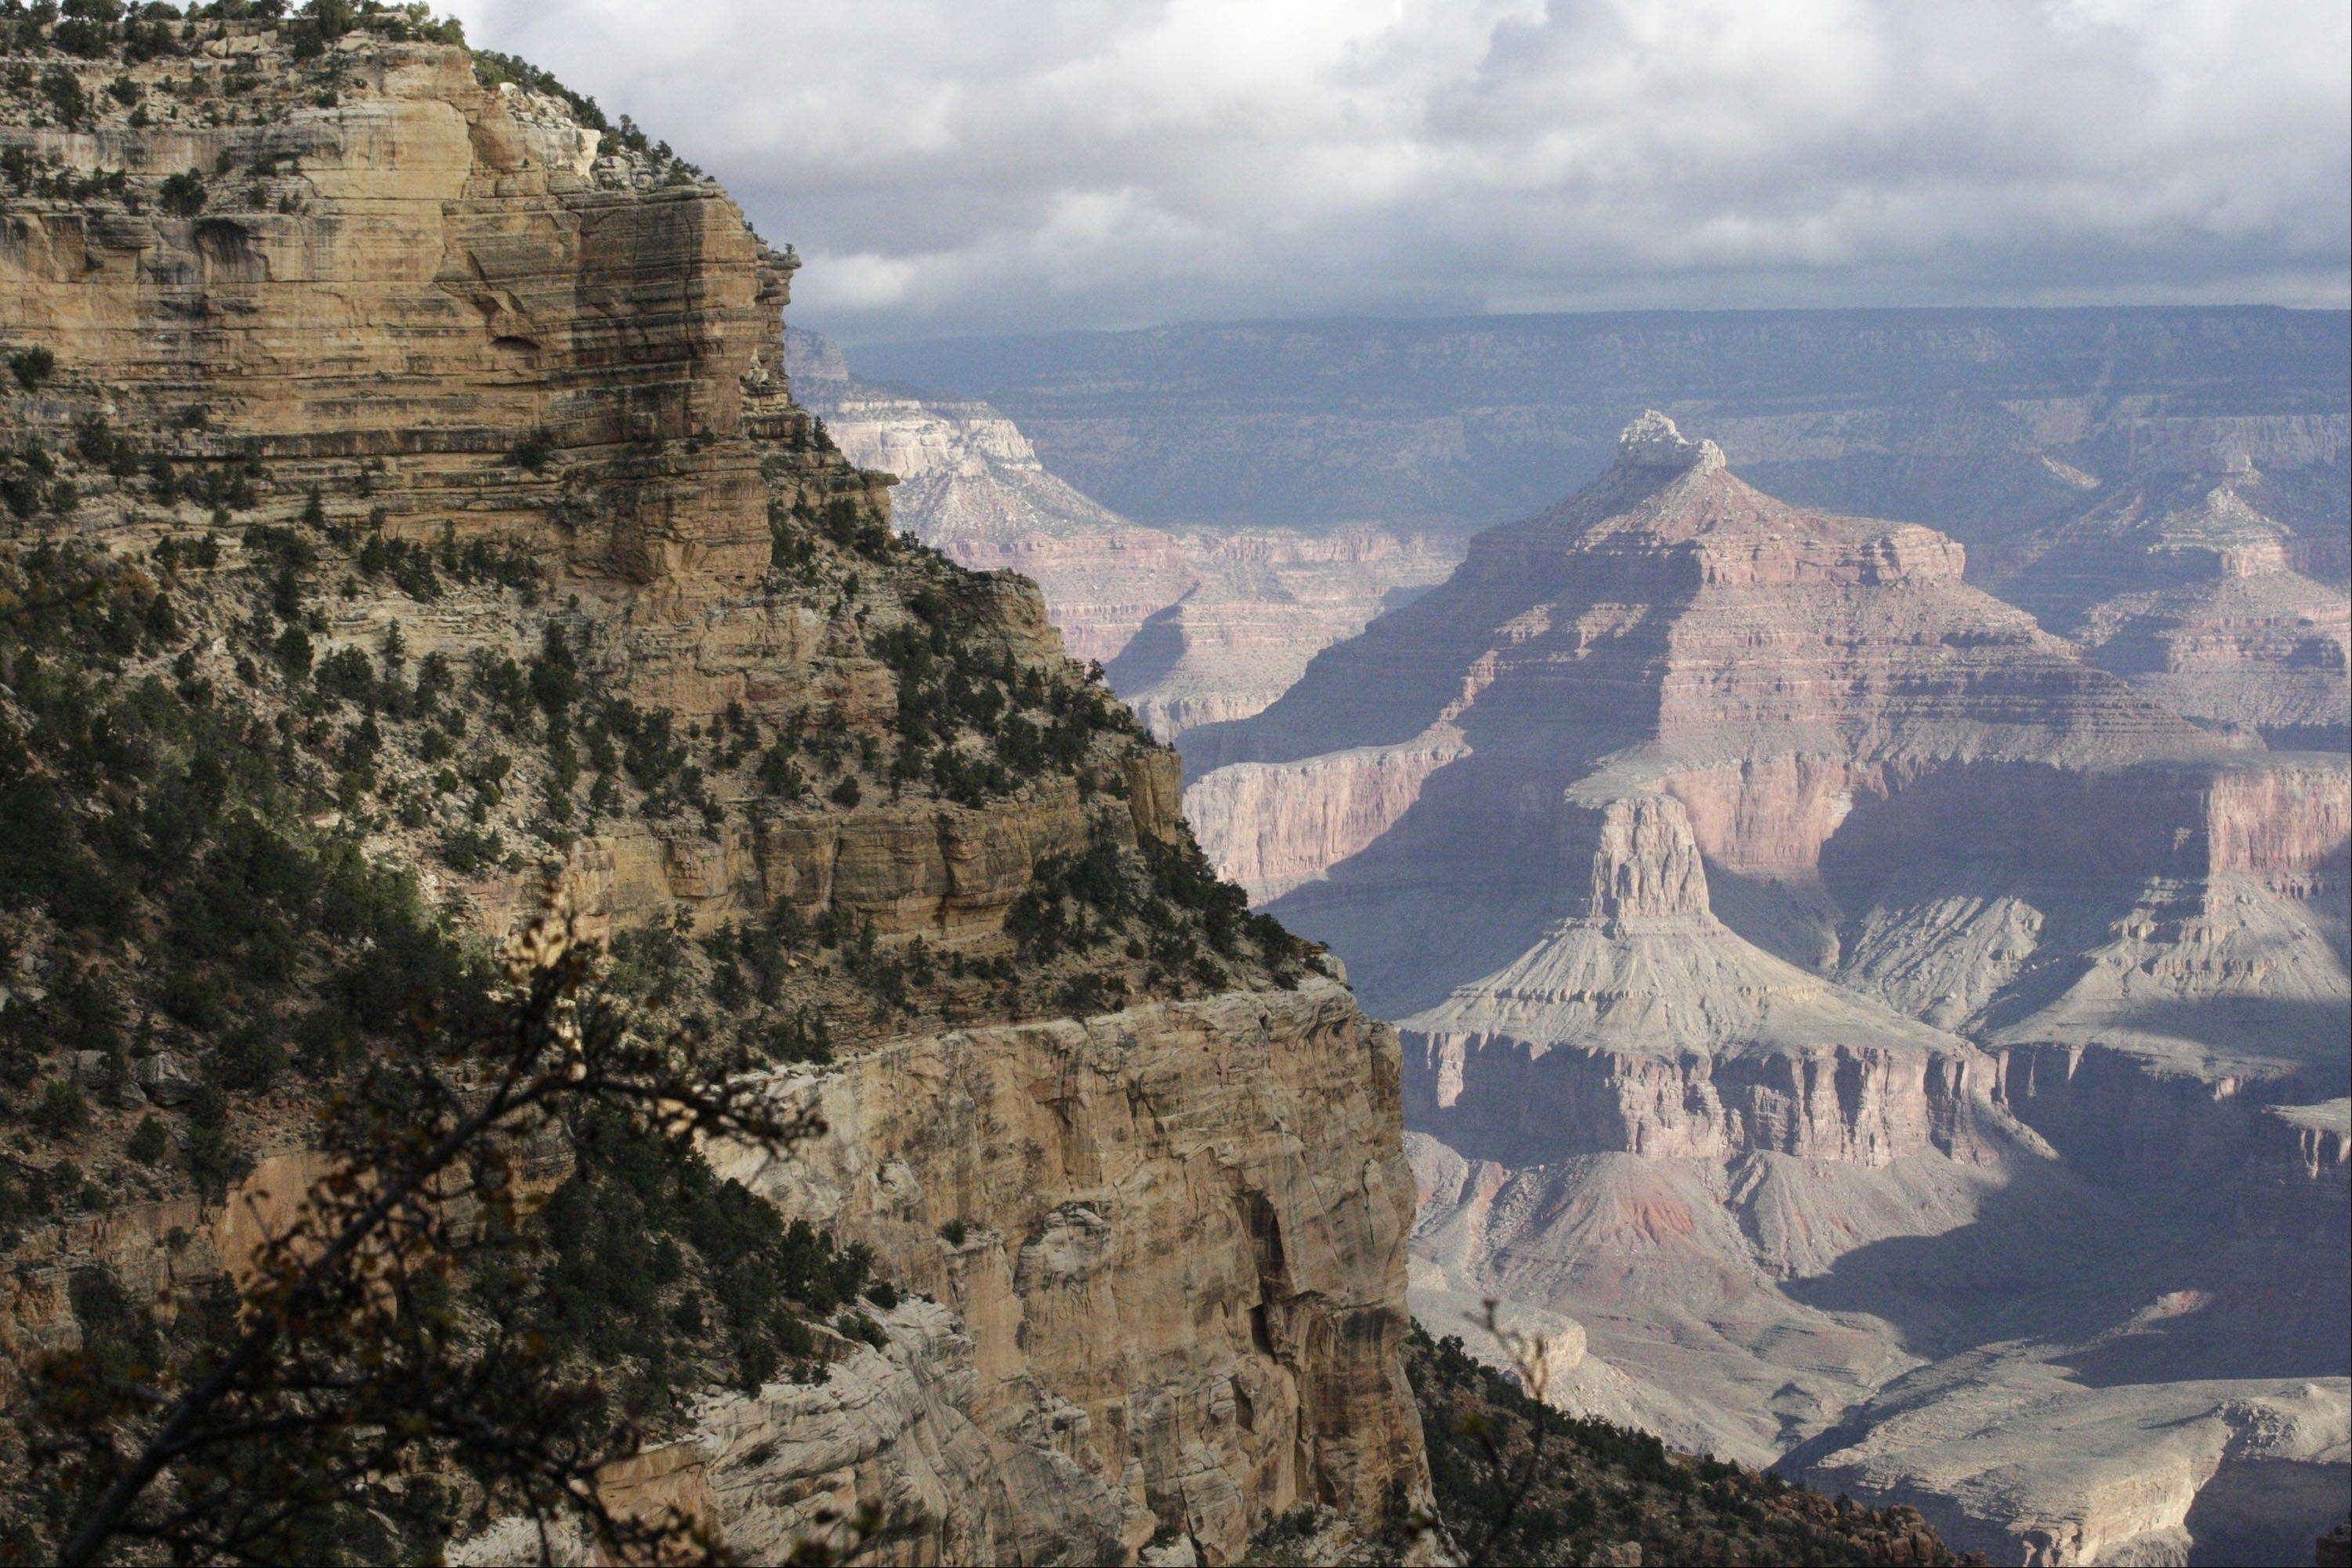 Search engine giant Google is using the Trekker, a nearly 40-pound, backpack-sized camera unit, to showcase the Grand Canyon�s most popular hiking trails on the South Rim and other off-road sites.